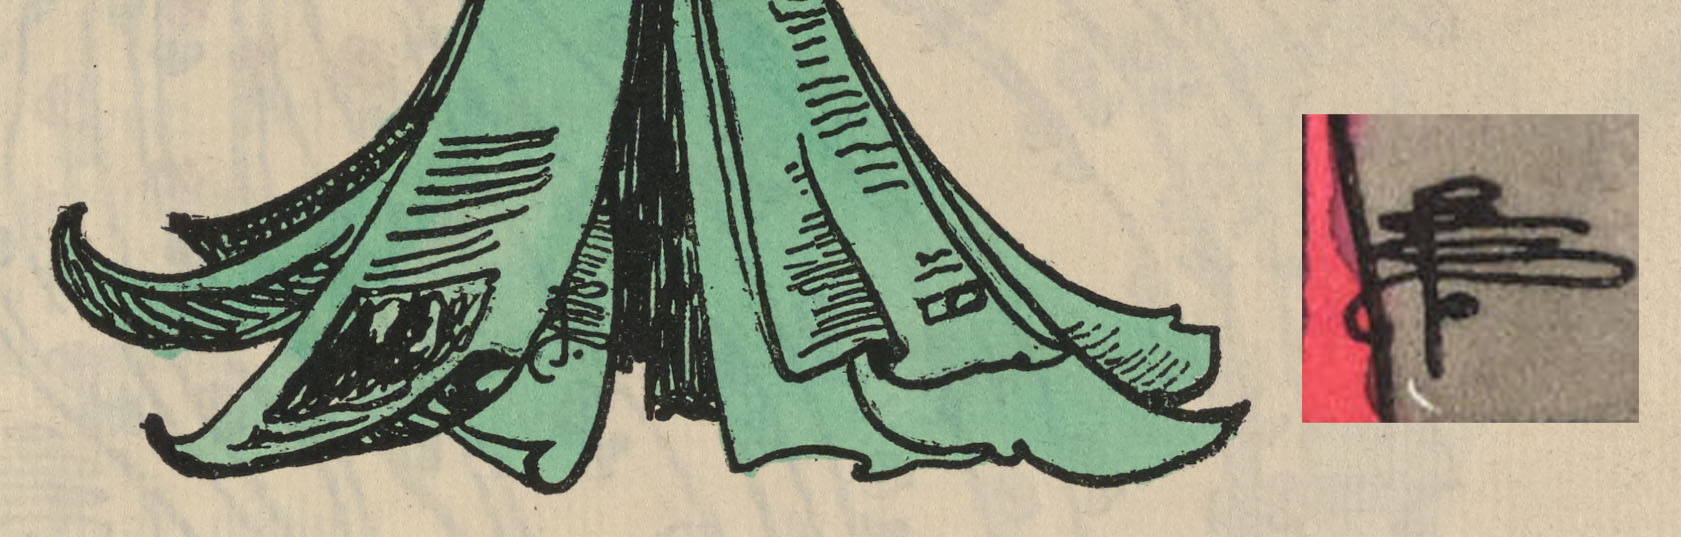 Enlarged detail of front cover design for The Green Sheaf, with sample monogram taken from fig. 2.